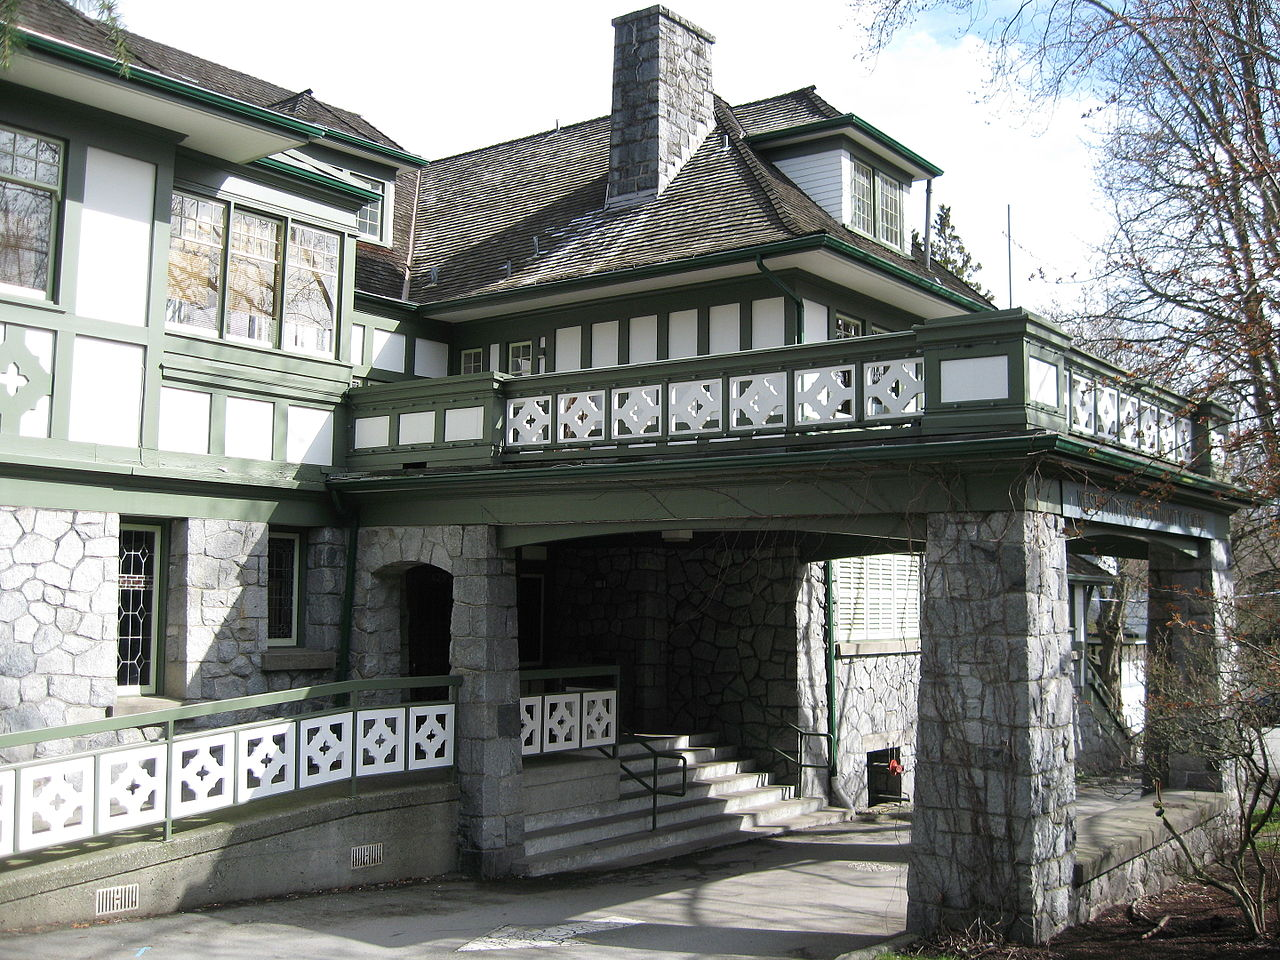 Rear House 1910 By Samuel Maclure Vancouver Image Chris10chan Via Wikimedia Commons With A Style Founded In The Arts And Crafts Movements